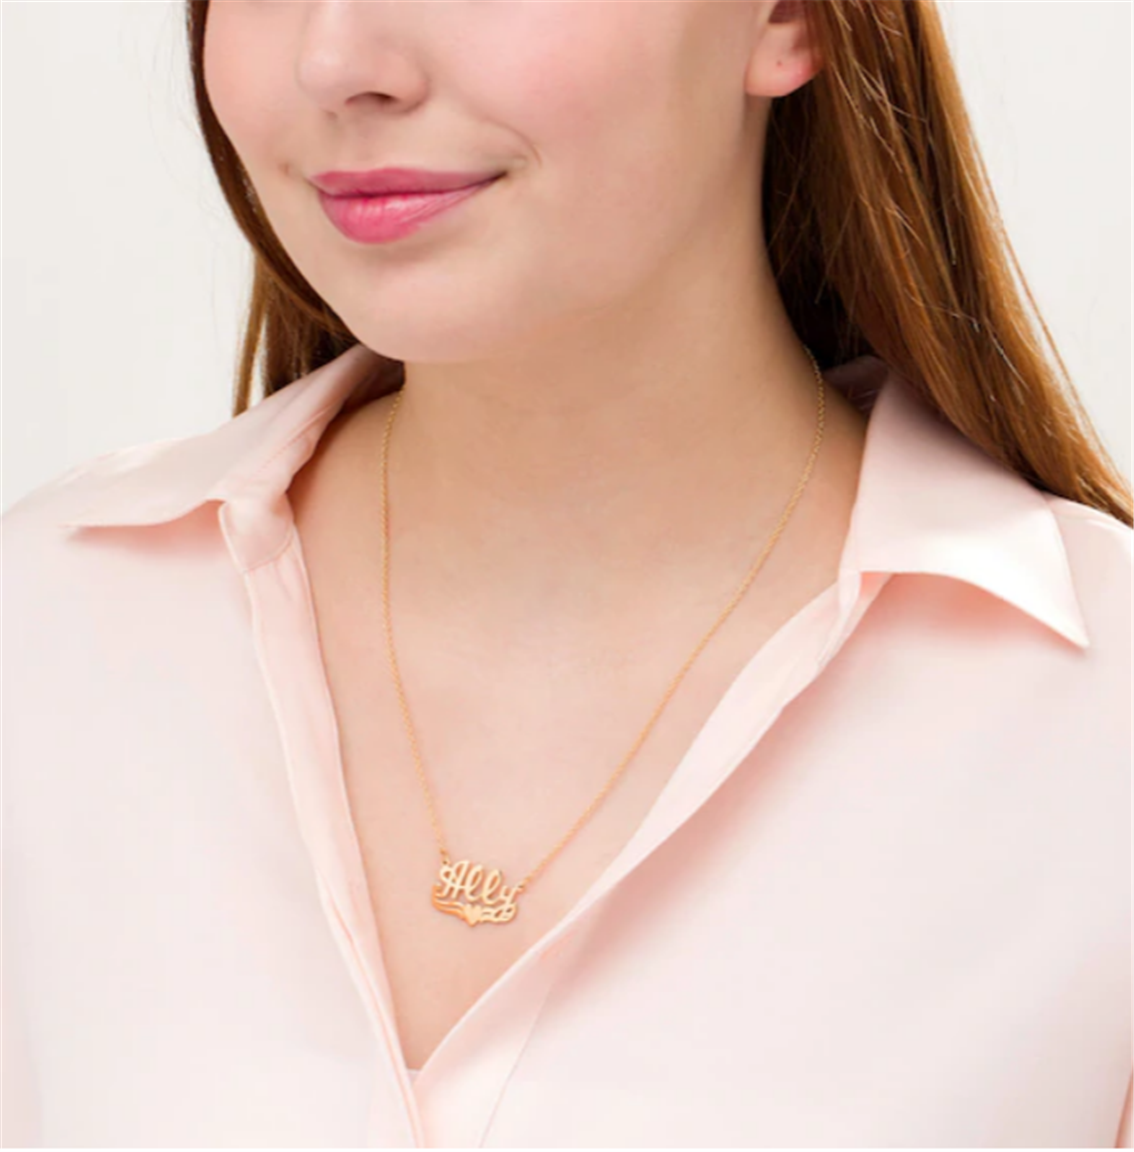 Zales – Heart Necklace in Sterling Silver with 14K Gold Plate or Sterling Silver Only $19.99, Reg $99!